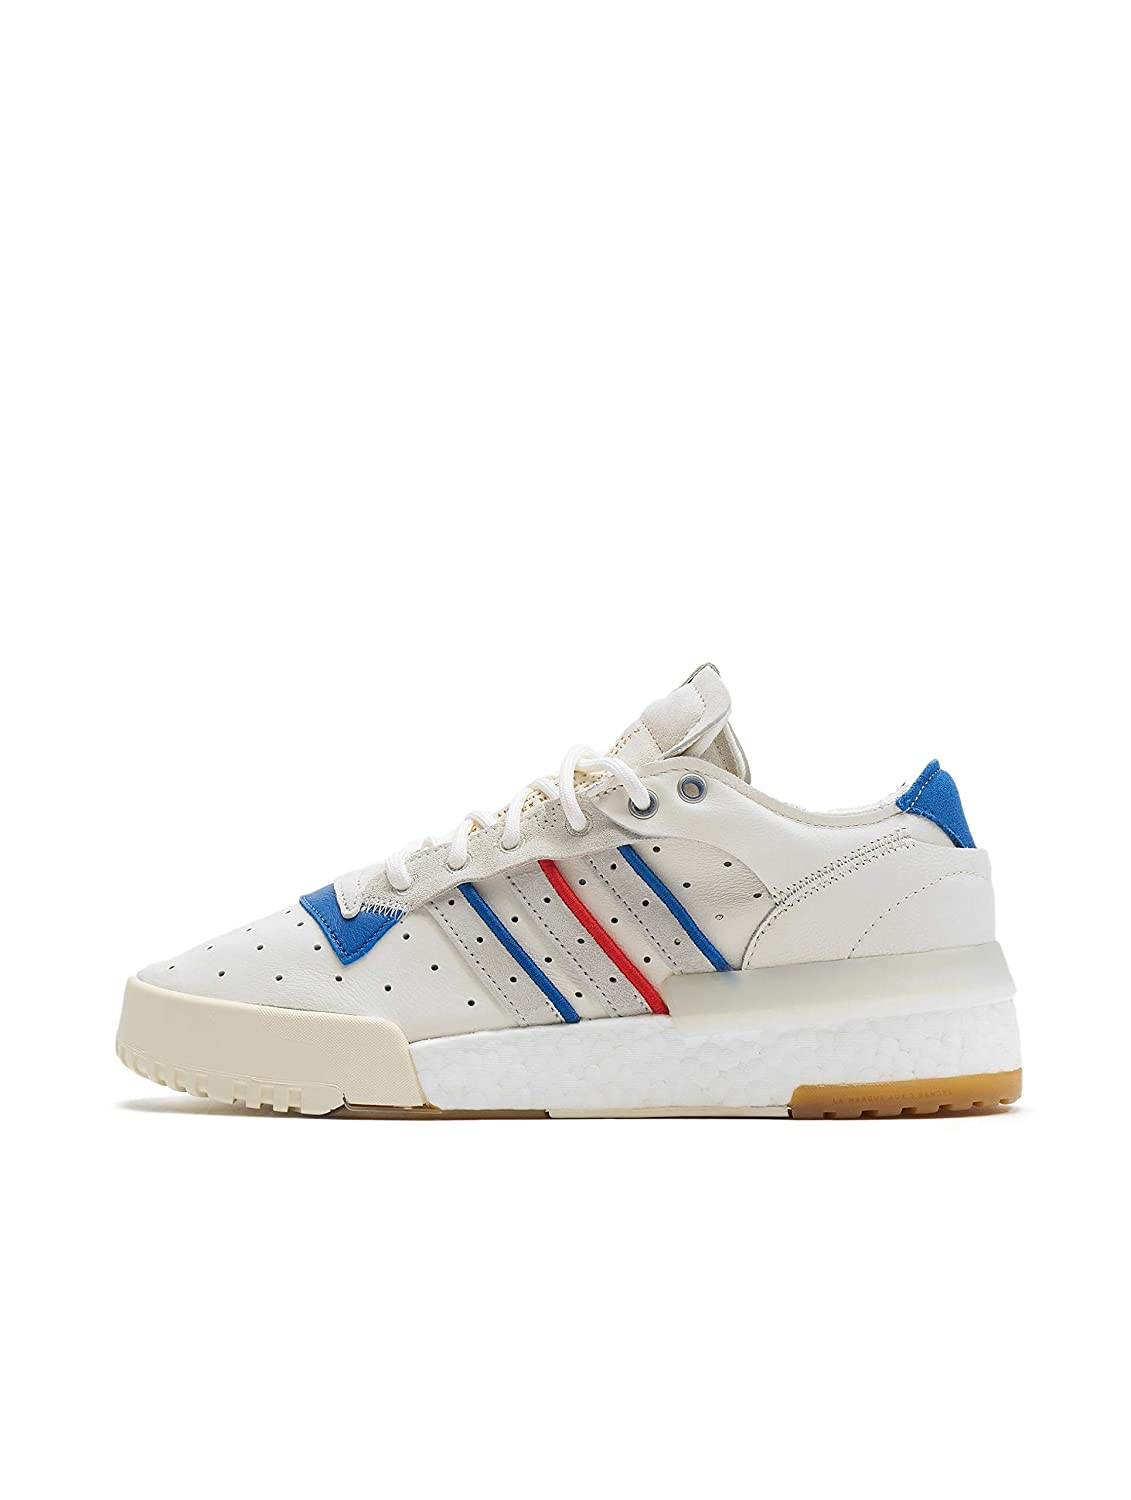 Acquista adidas Originals Uomo Sneakers Rivalry RM Low miglior prezzo offerta